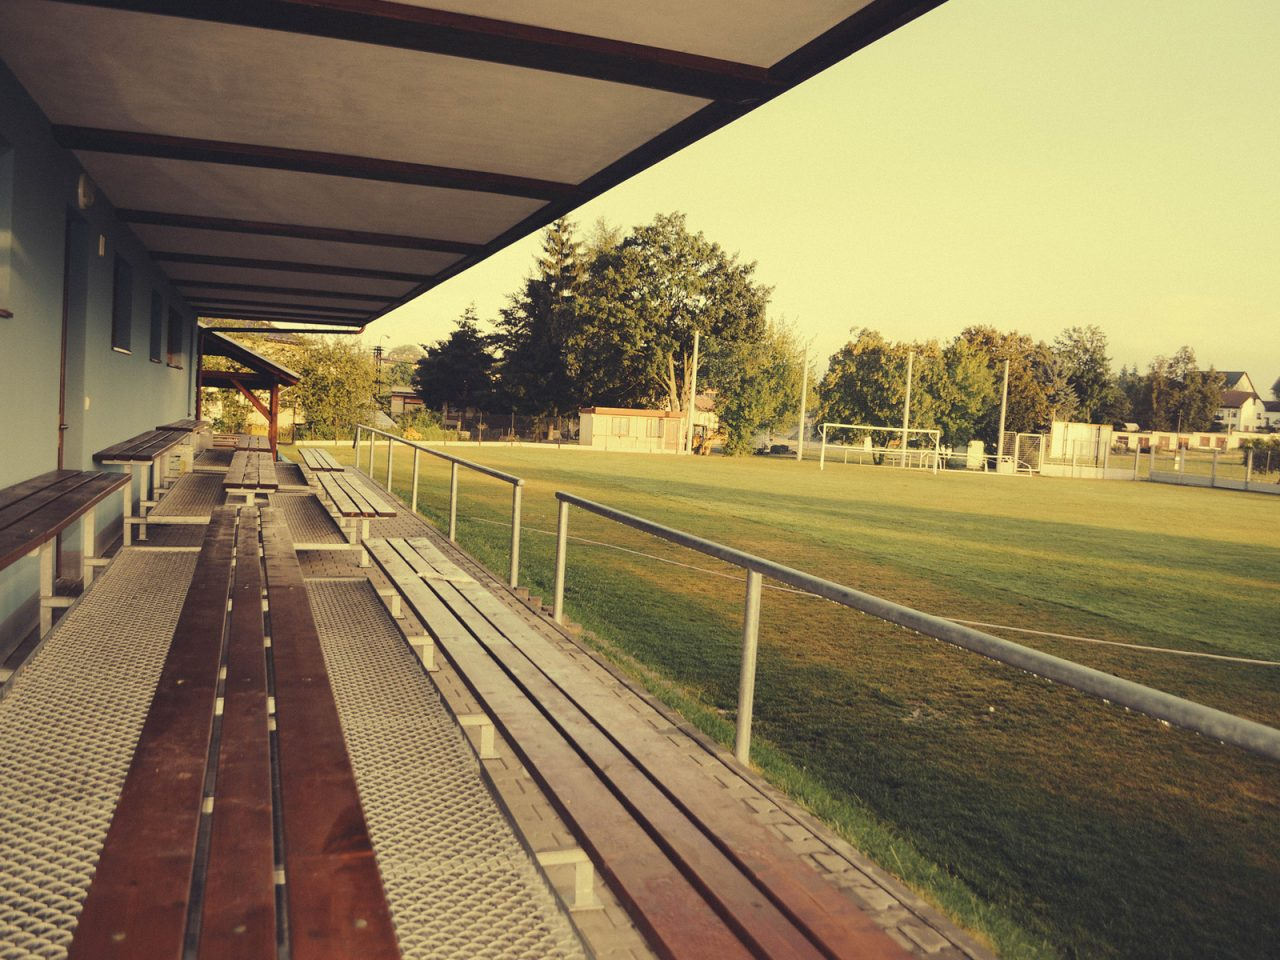 Football Stadium Benches, Czech Republic - Free Camping